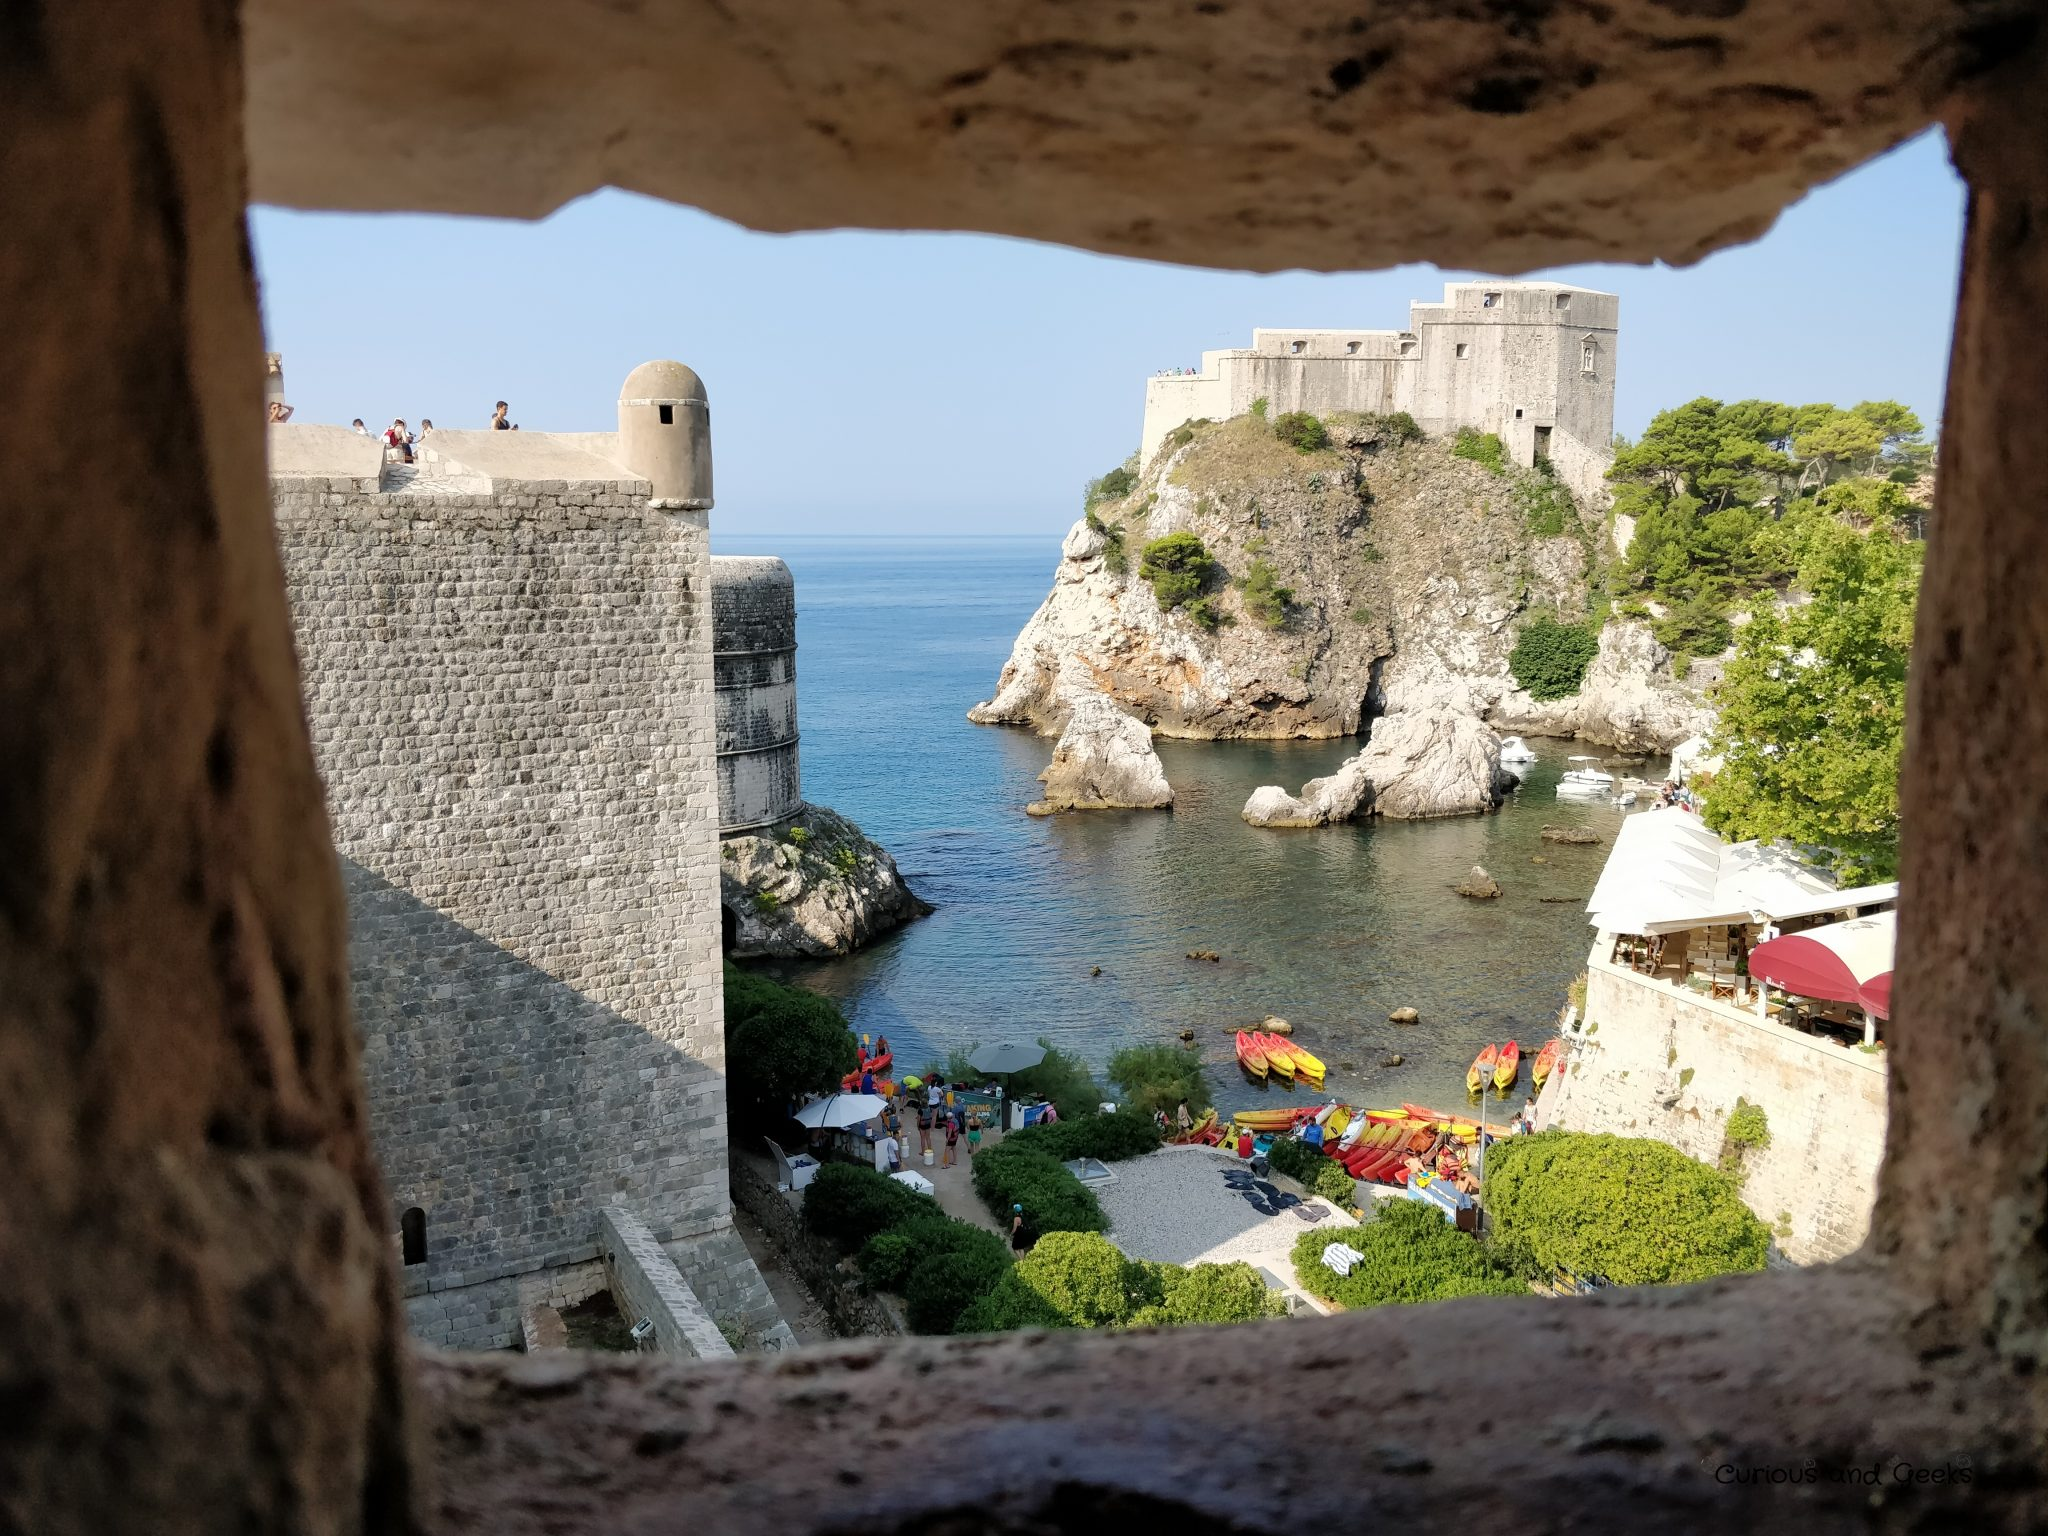 IMG 20180802 090201 - Game of Thrones filming locations in Dubrovnik